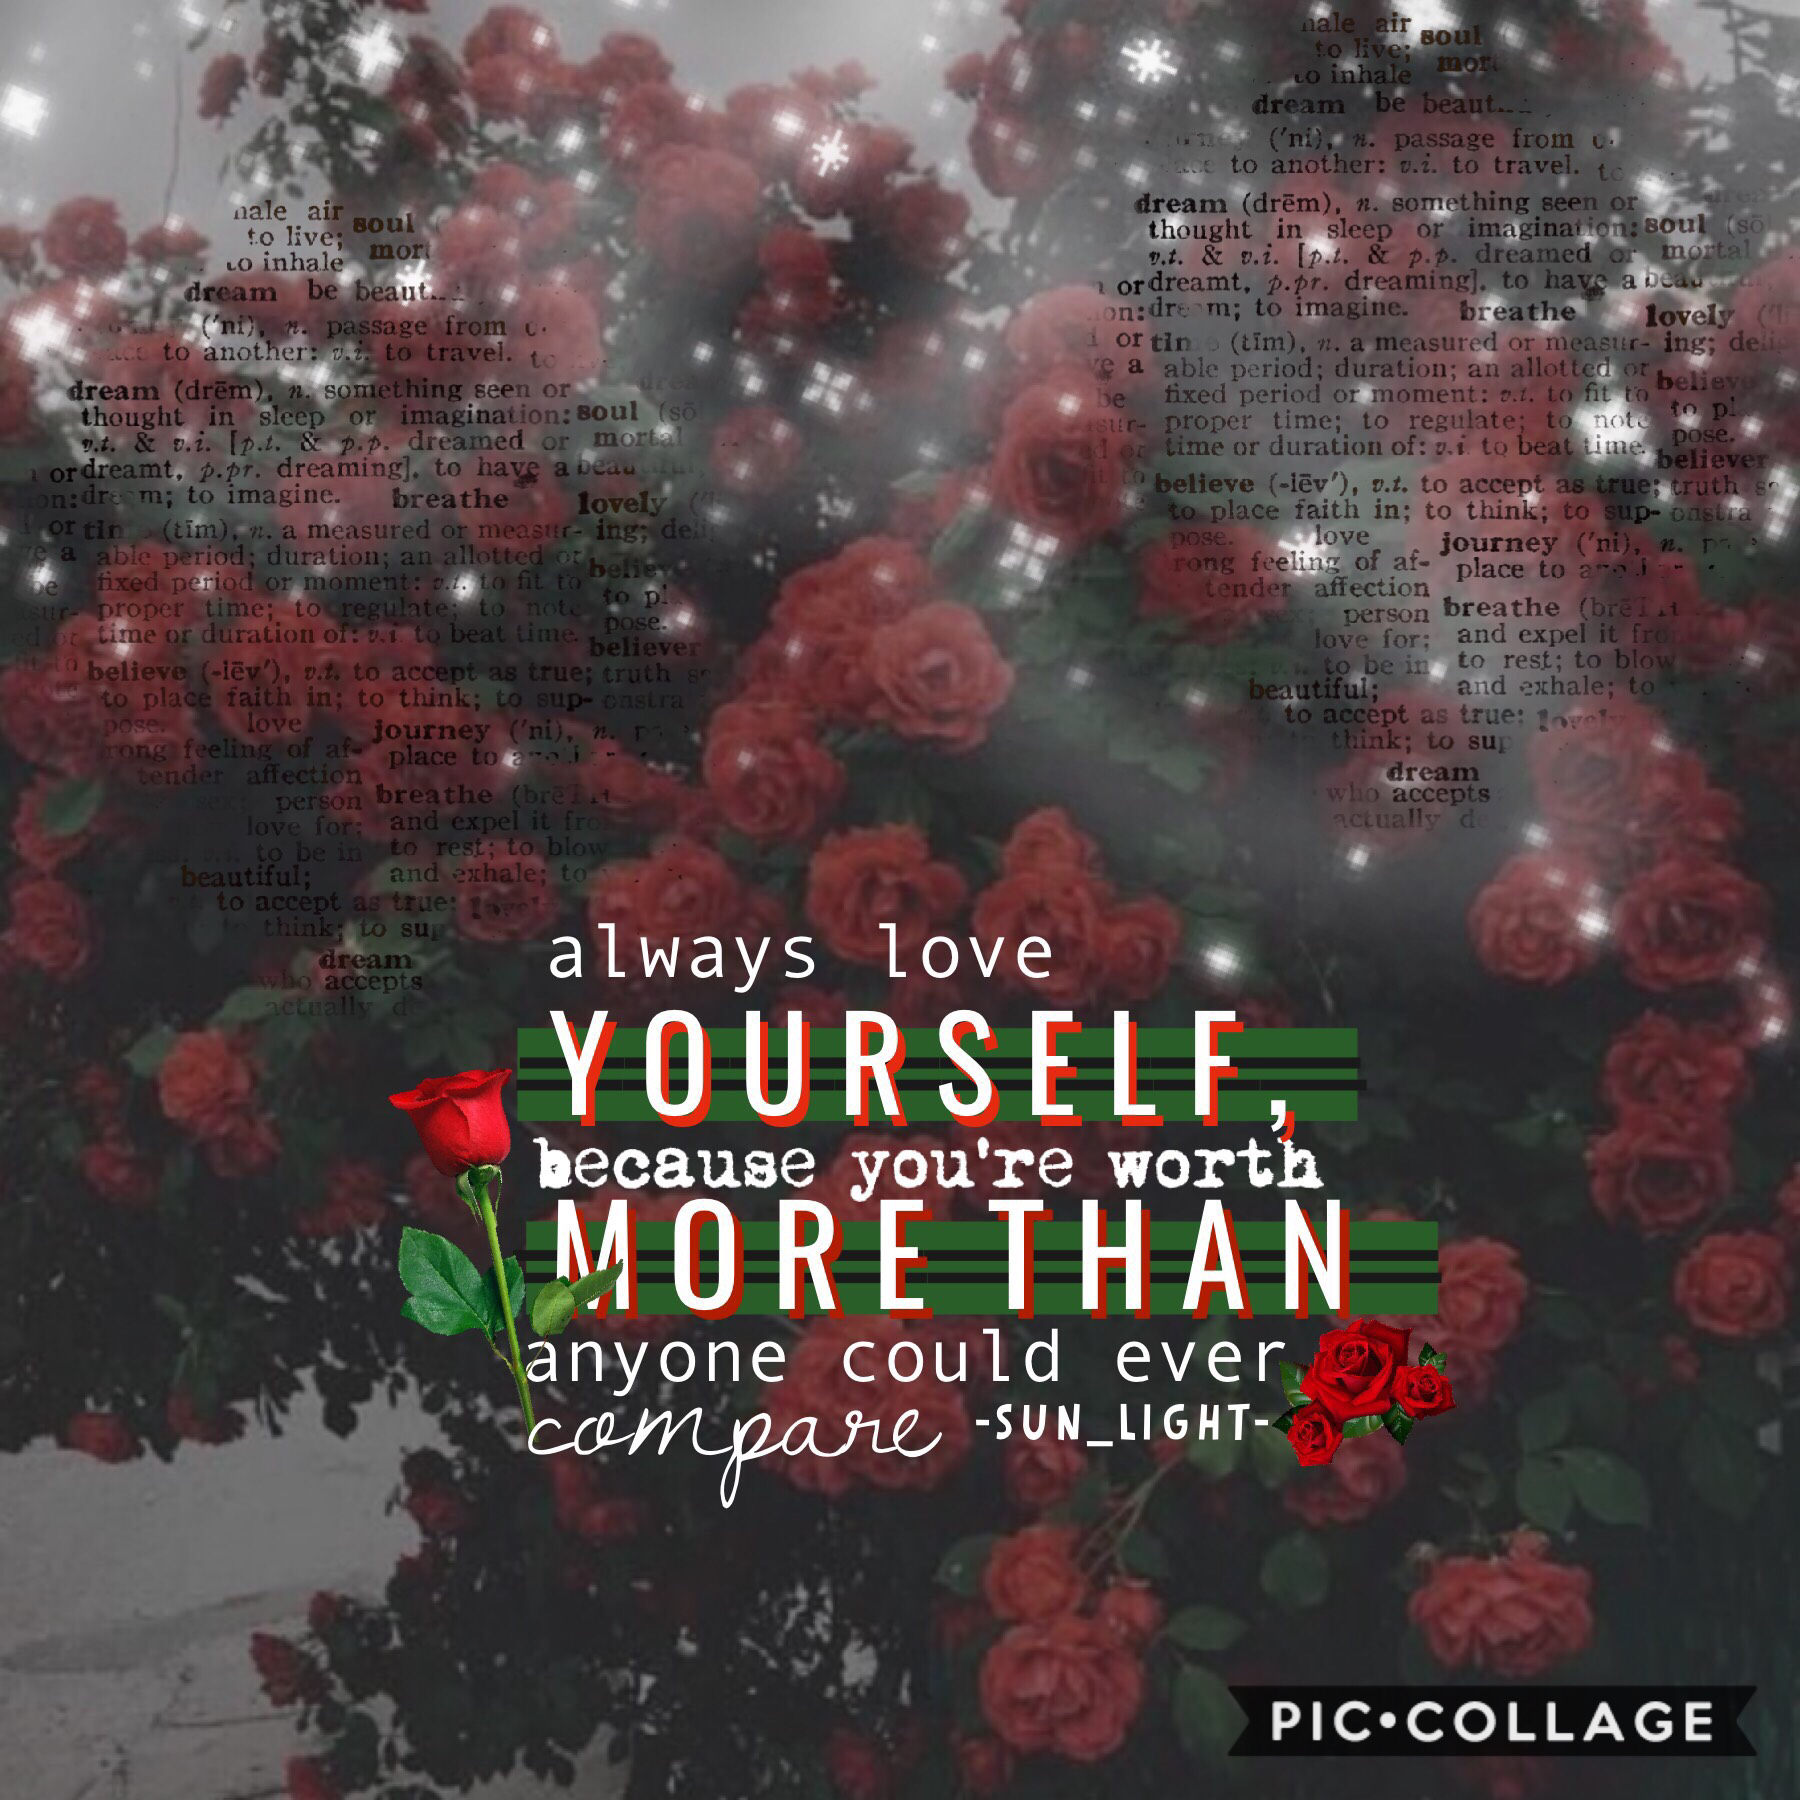 🌹🌿happy (late) valentines day all my people!🌿🌹 take a rose and put up your hand if your single but you still love yourself!💐👌....🌹🙋♀️😂...*me by myself😭😂* totally inspired by @dancingflowers! go follow her if you haven't already!💖 #selfloveisimportant #wh